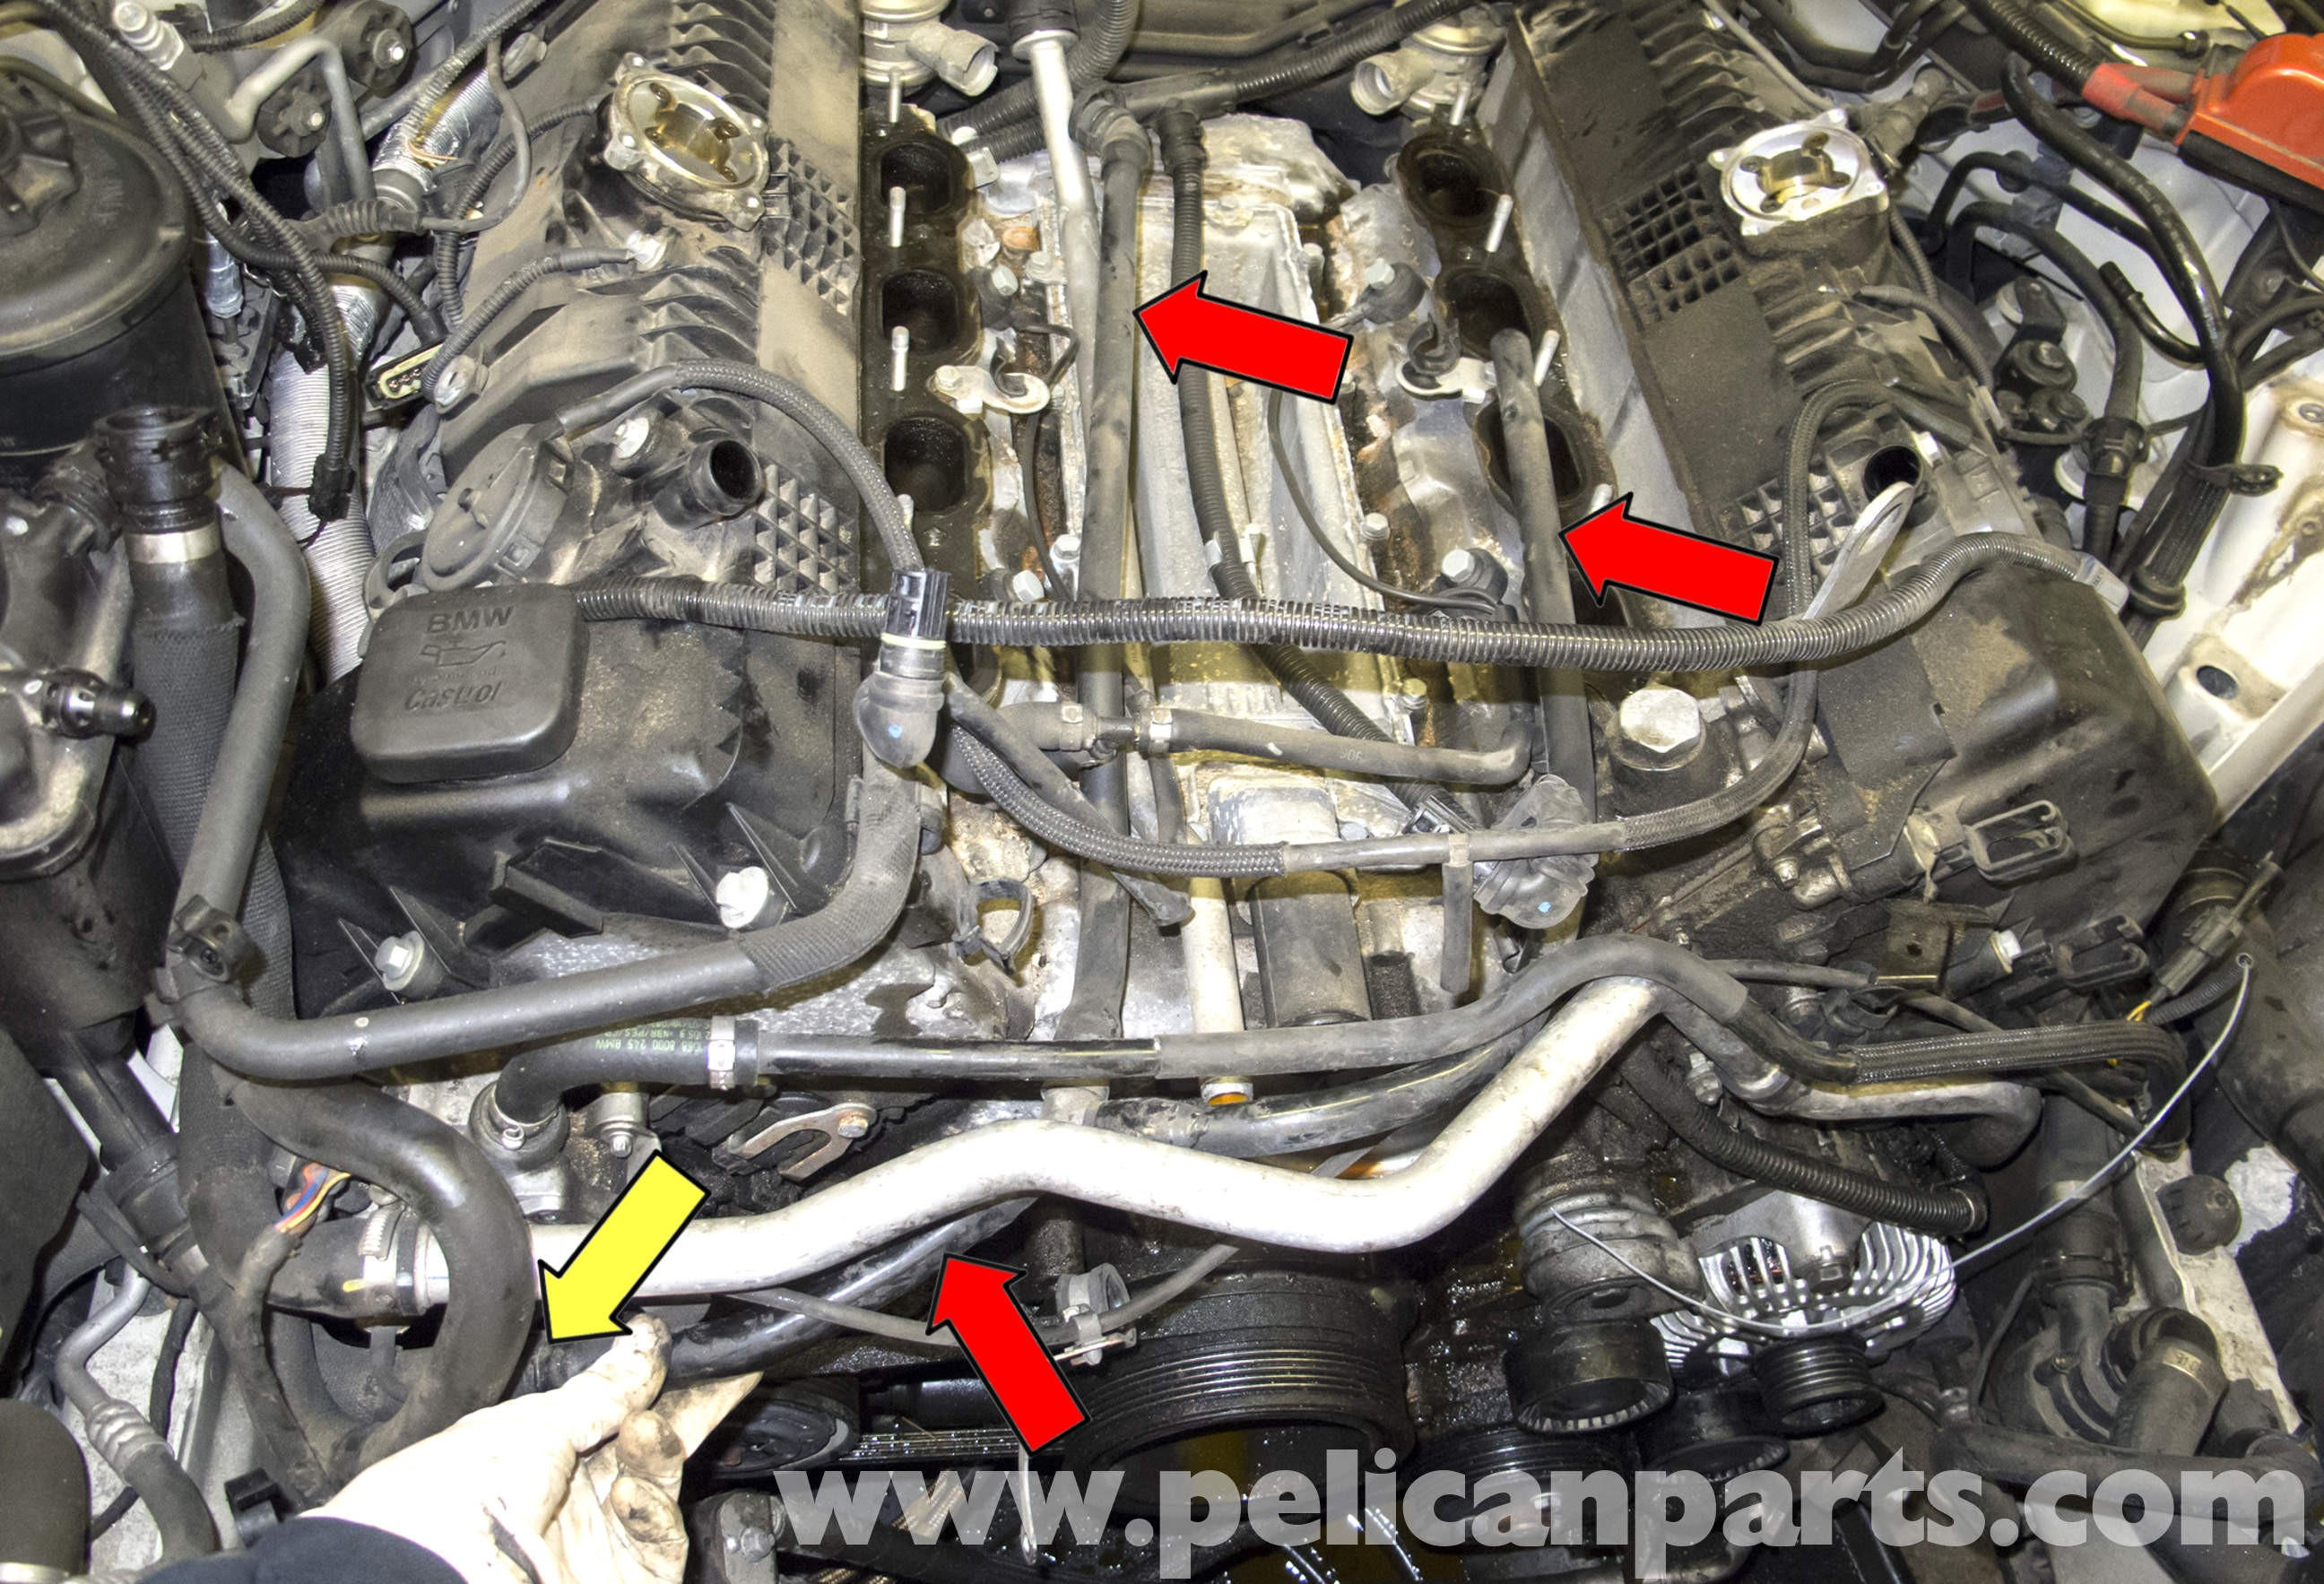 Diagram Of Car Water Pump Bmw E60 5 Series N62 8 Cylinder Coolant Pipe Replacement Pelican Of Diagram Of Car Water Pump How to Change Engine Timing Belt Dodge Intrepid 3 5l 95 97 Part 2